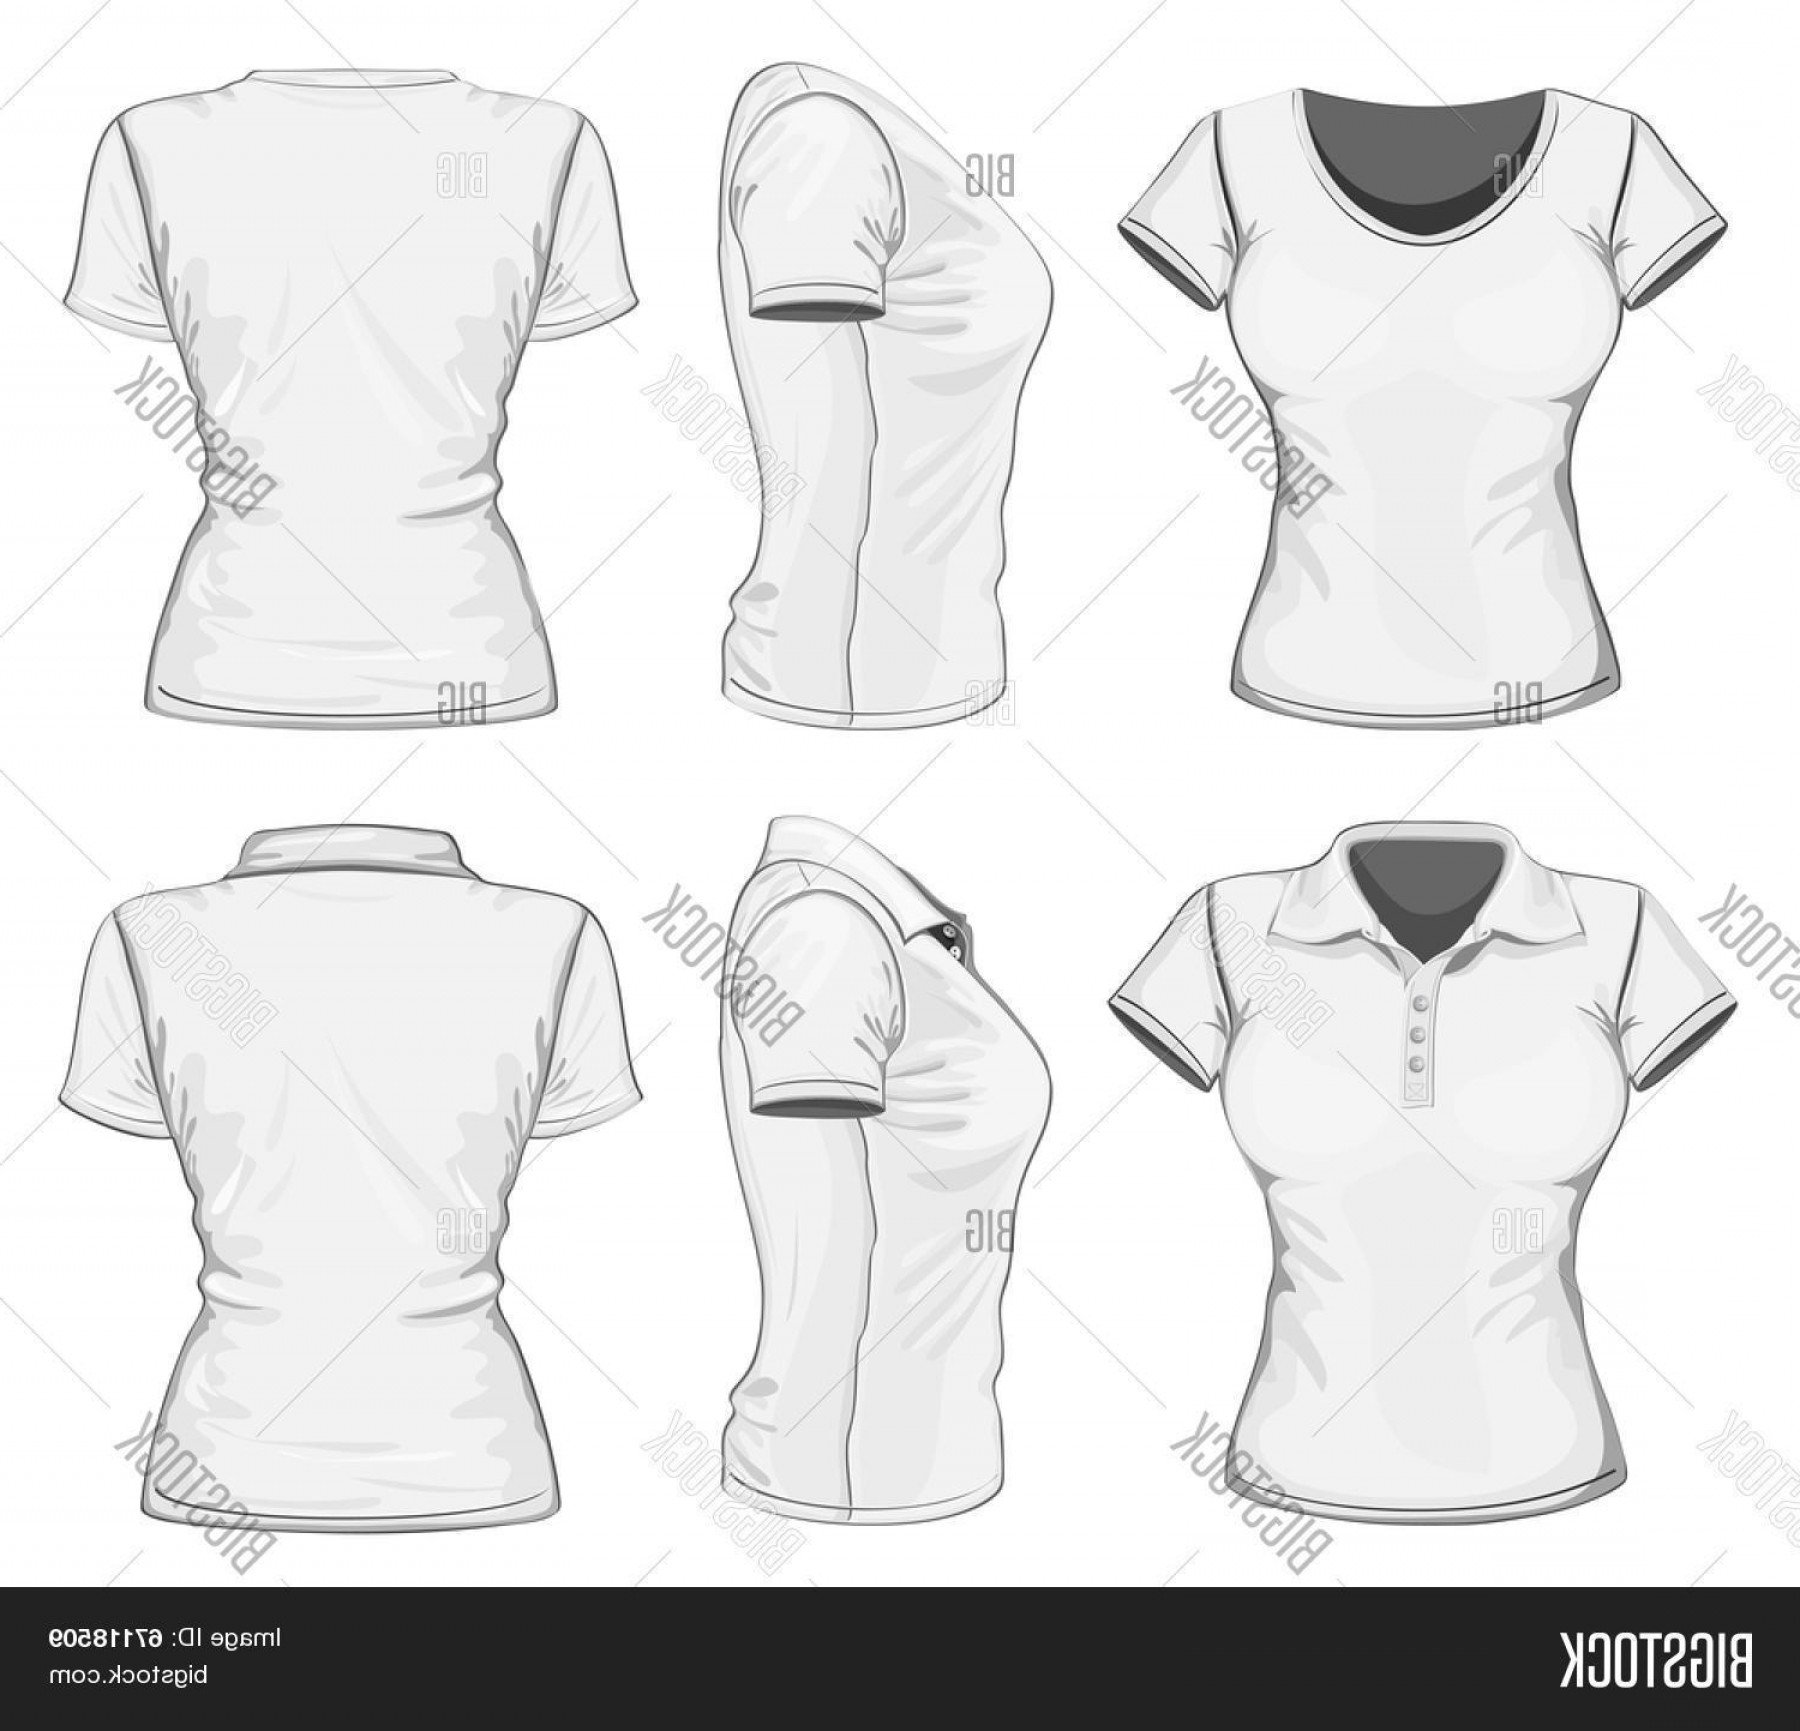 Female Polo Shirt Vector Template: Stock Vector Women S White Short Sleeve Polo Shirt And T Shirt Design Templates Frontc Backc And Side Views Vector Illustration